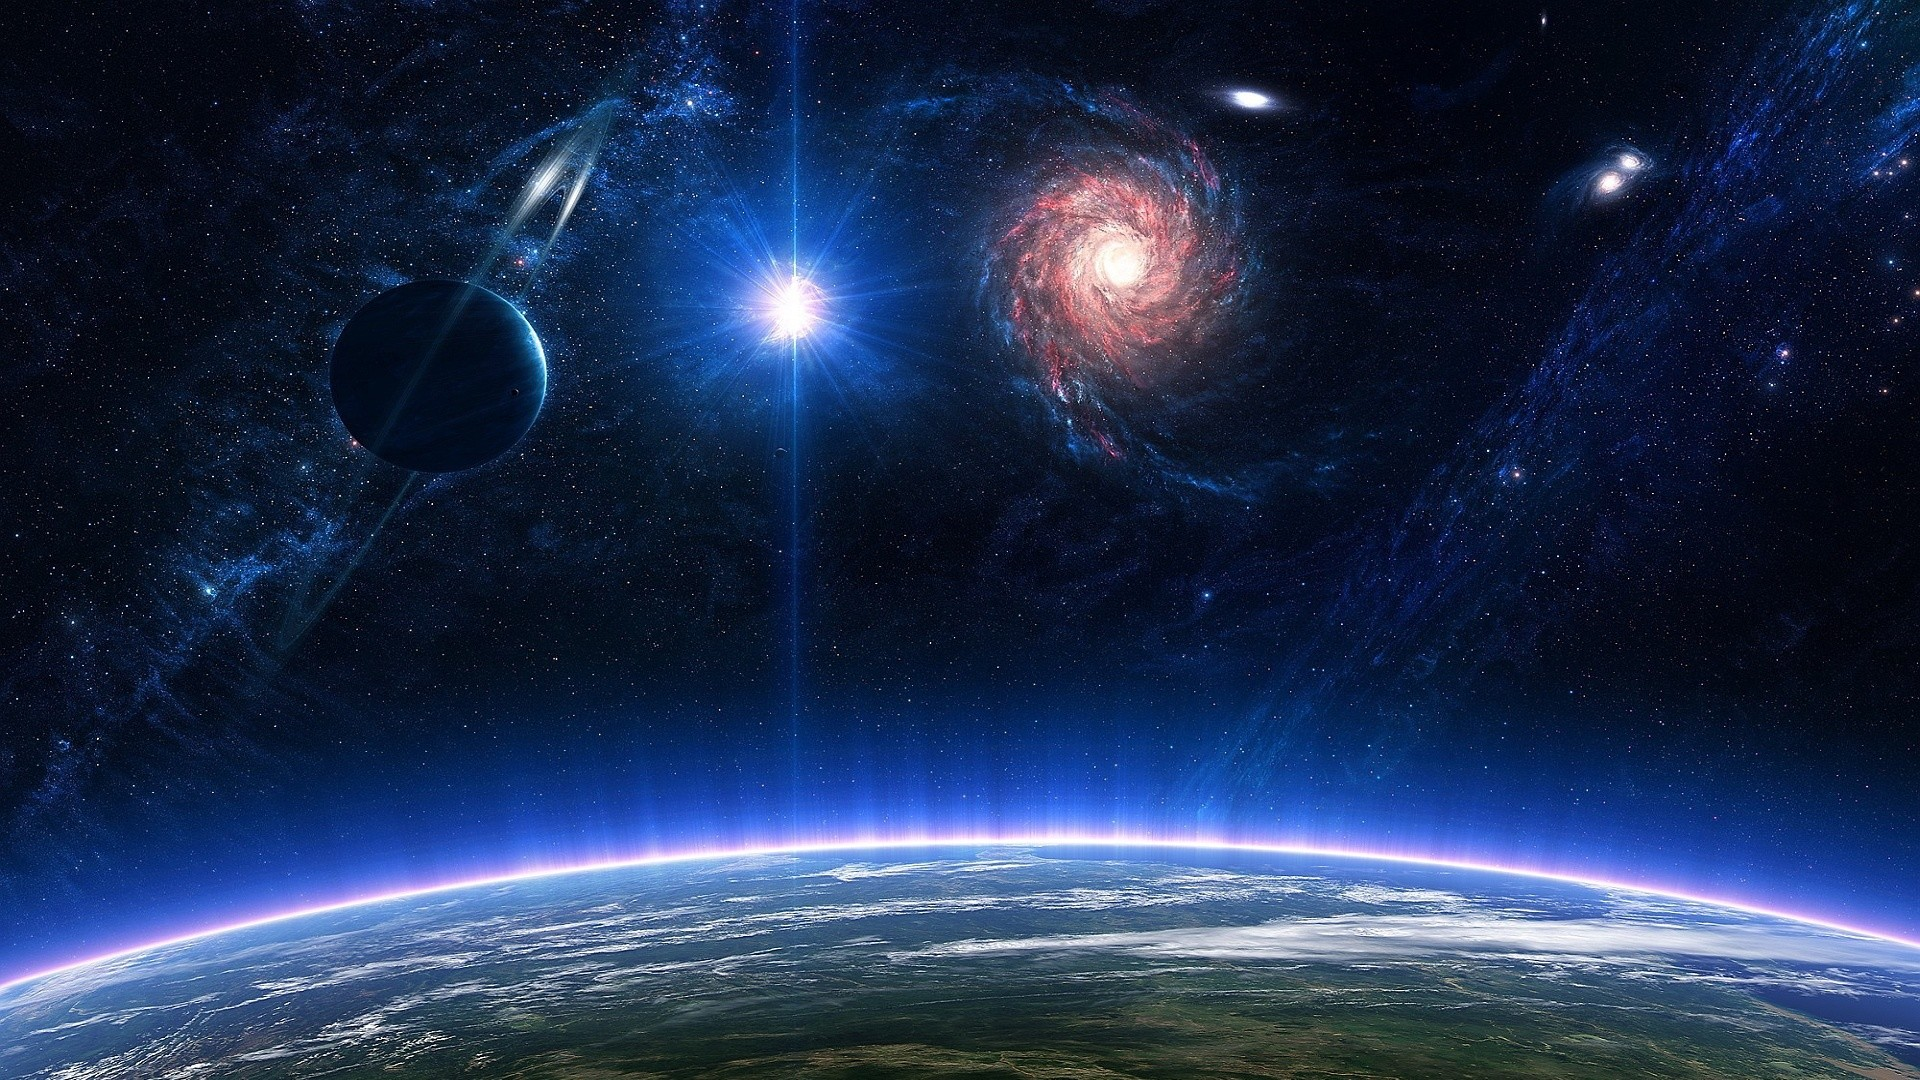 Galaxy Space Wallpapers